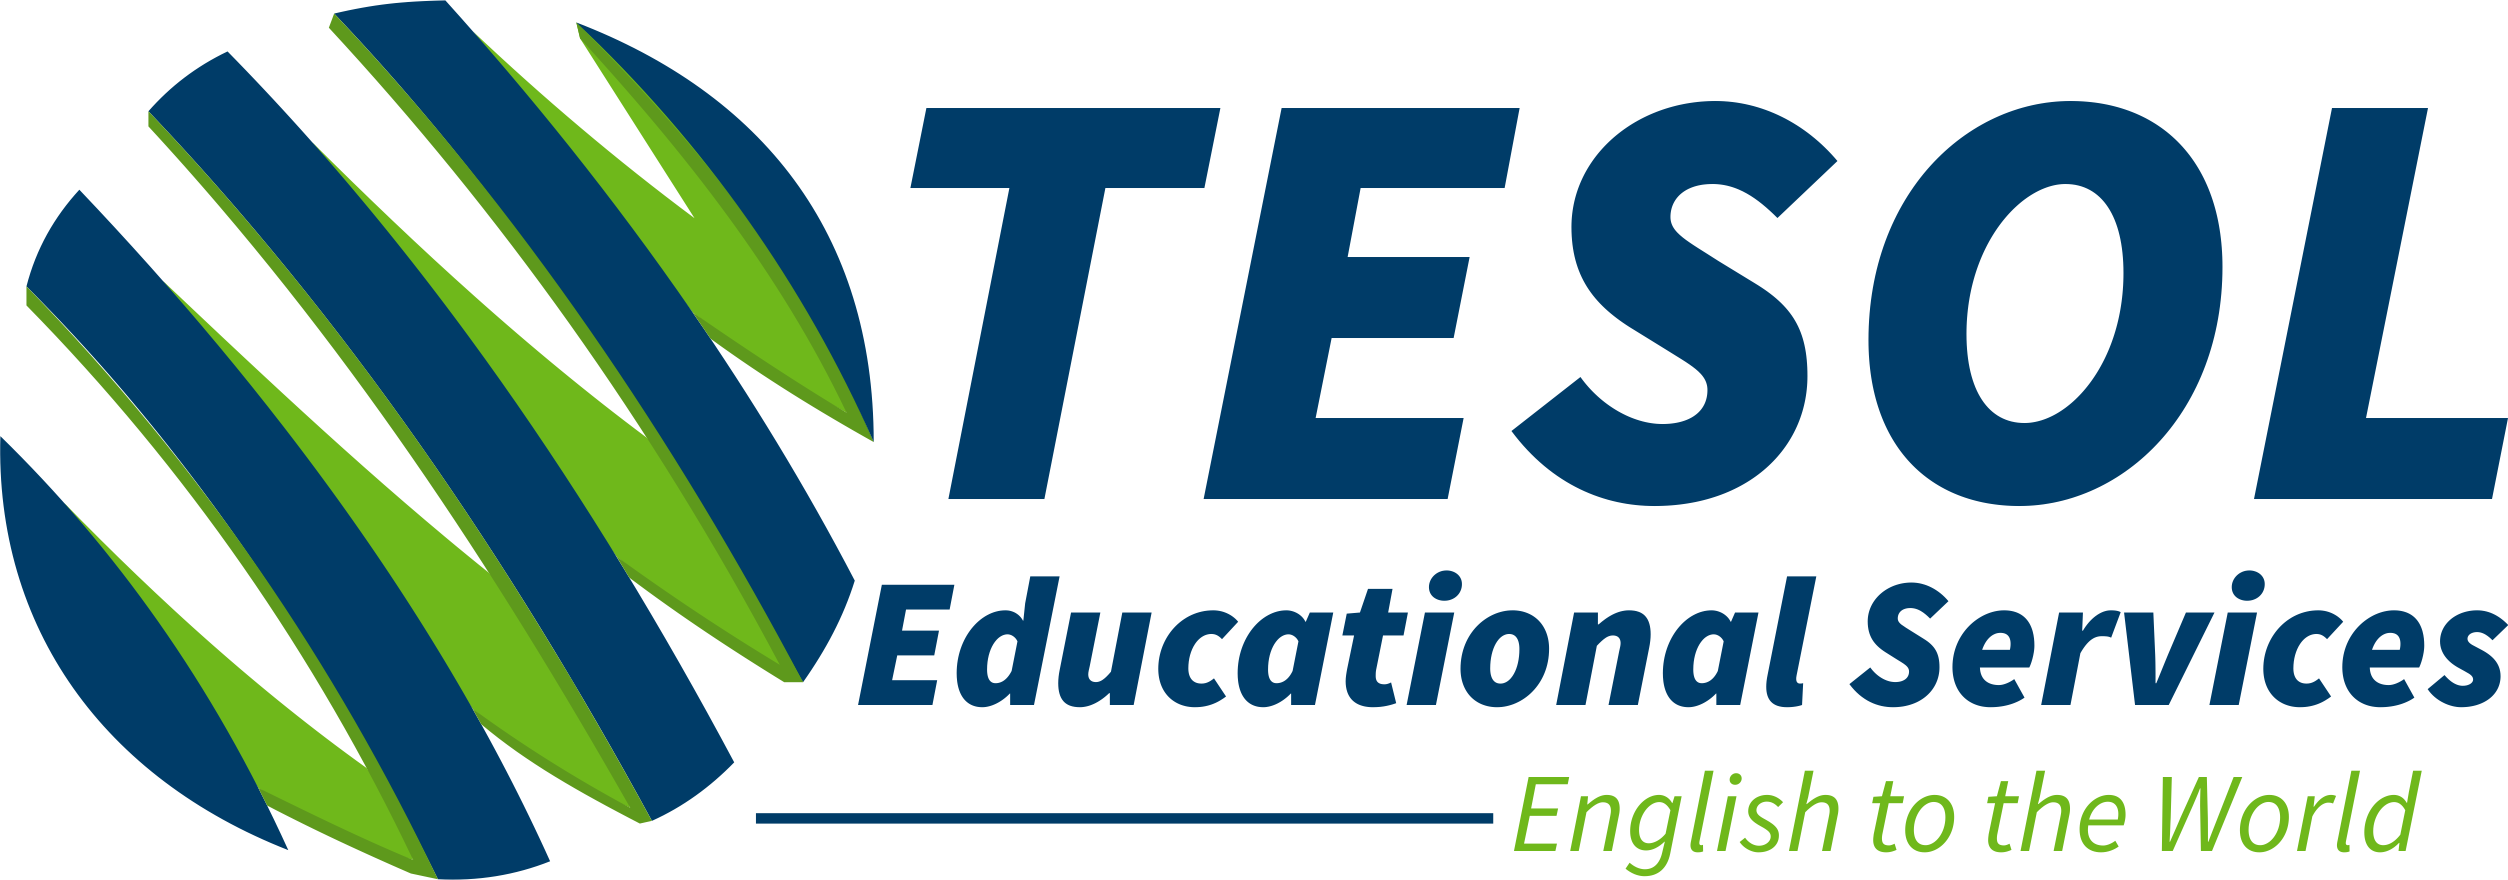 TESOL Educational Services Logo